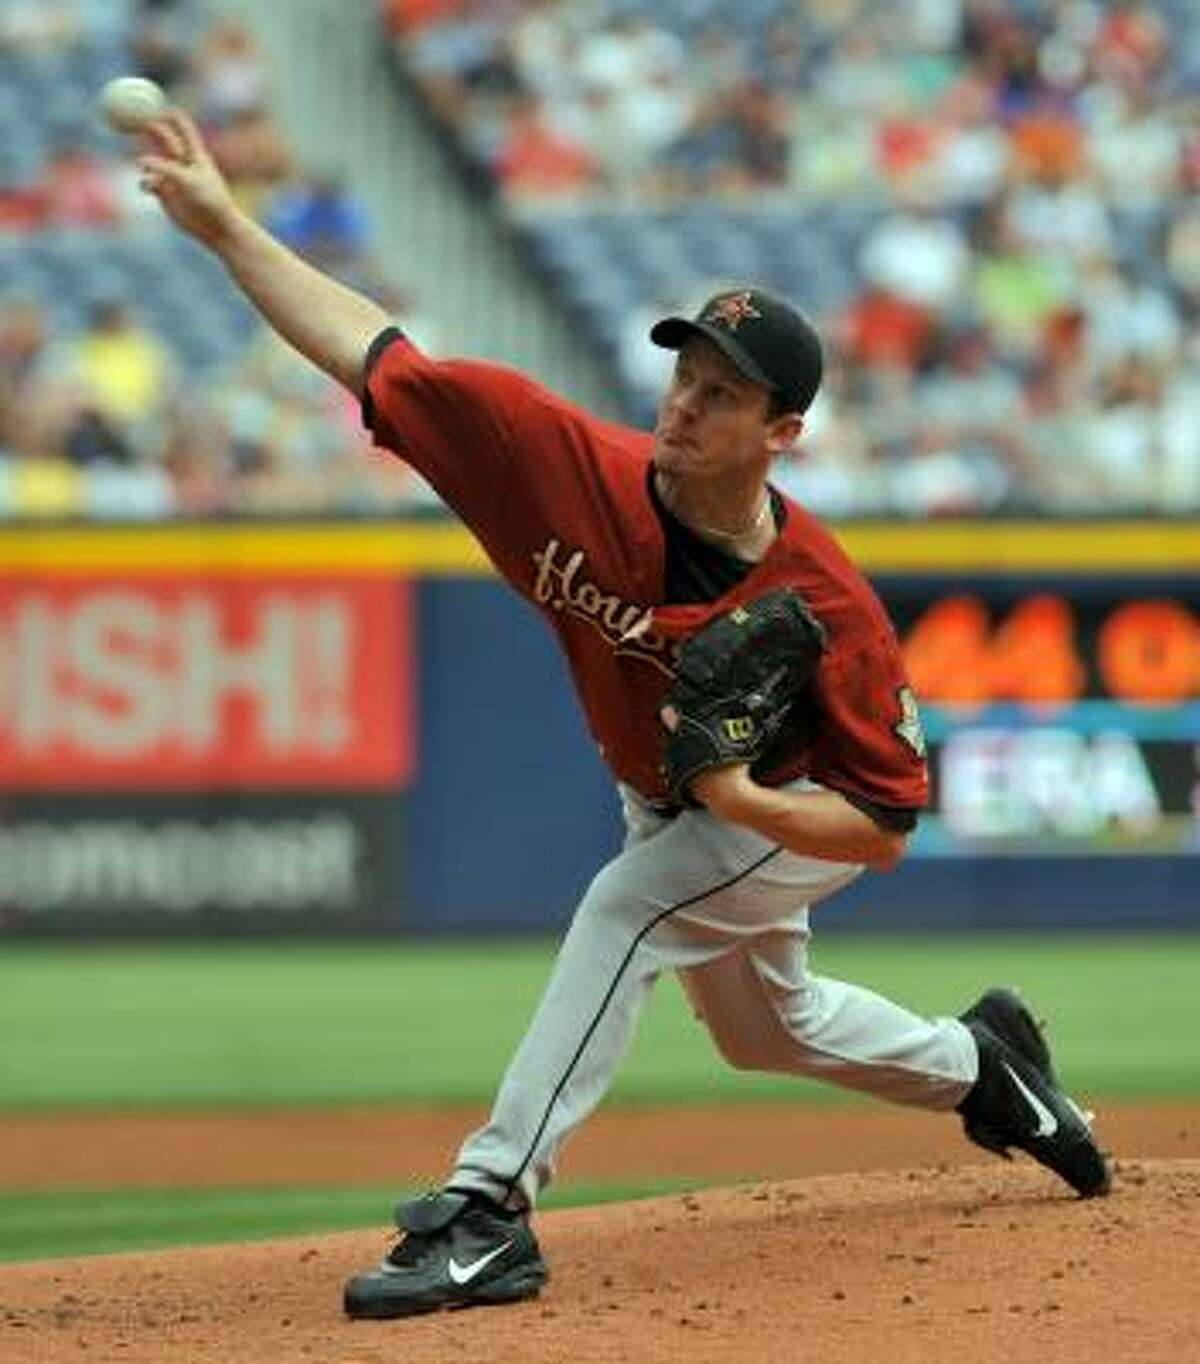 Roy Oswalt started against the Braves. Due to the rain delay during the second inning, Oswalt pitched one inning.